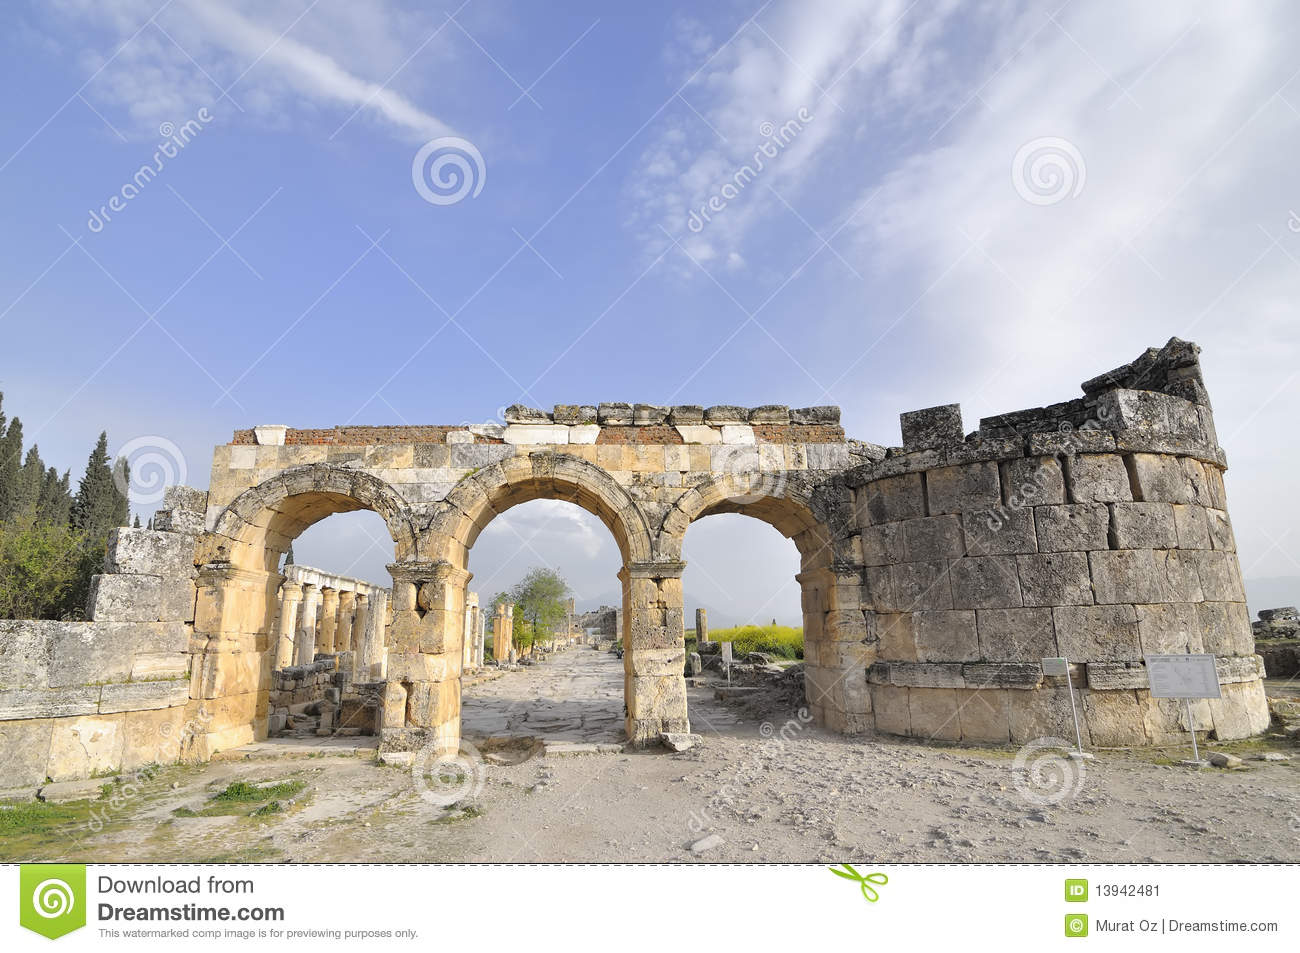 Denizli Turkey  city photo : City Gate Of Hierapolis,Denizli,Turkey Stock Image Image: 13942481